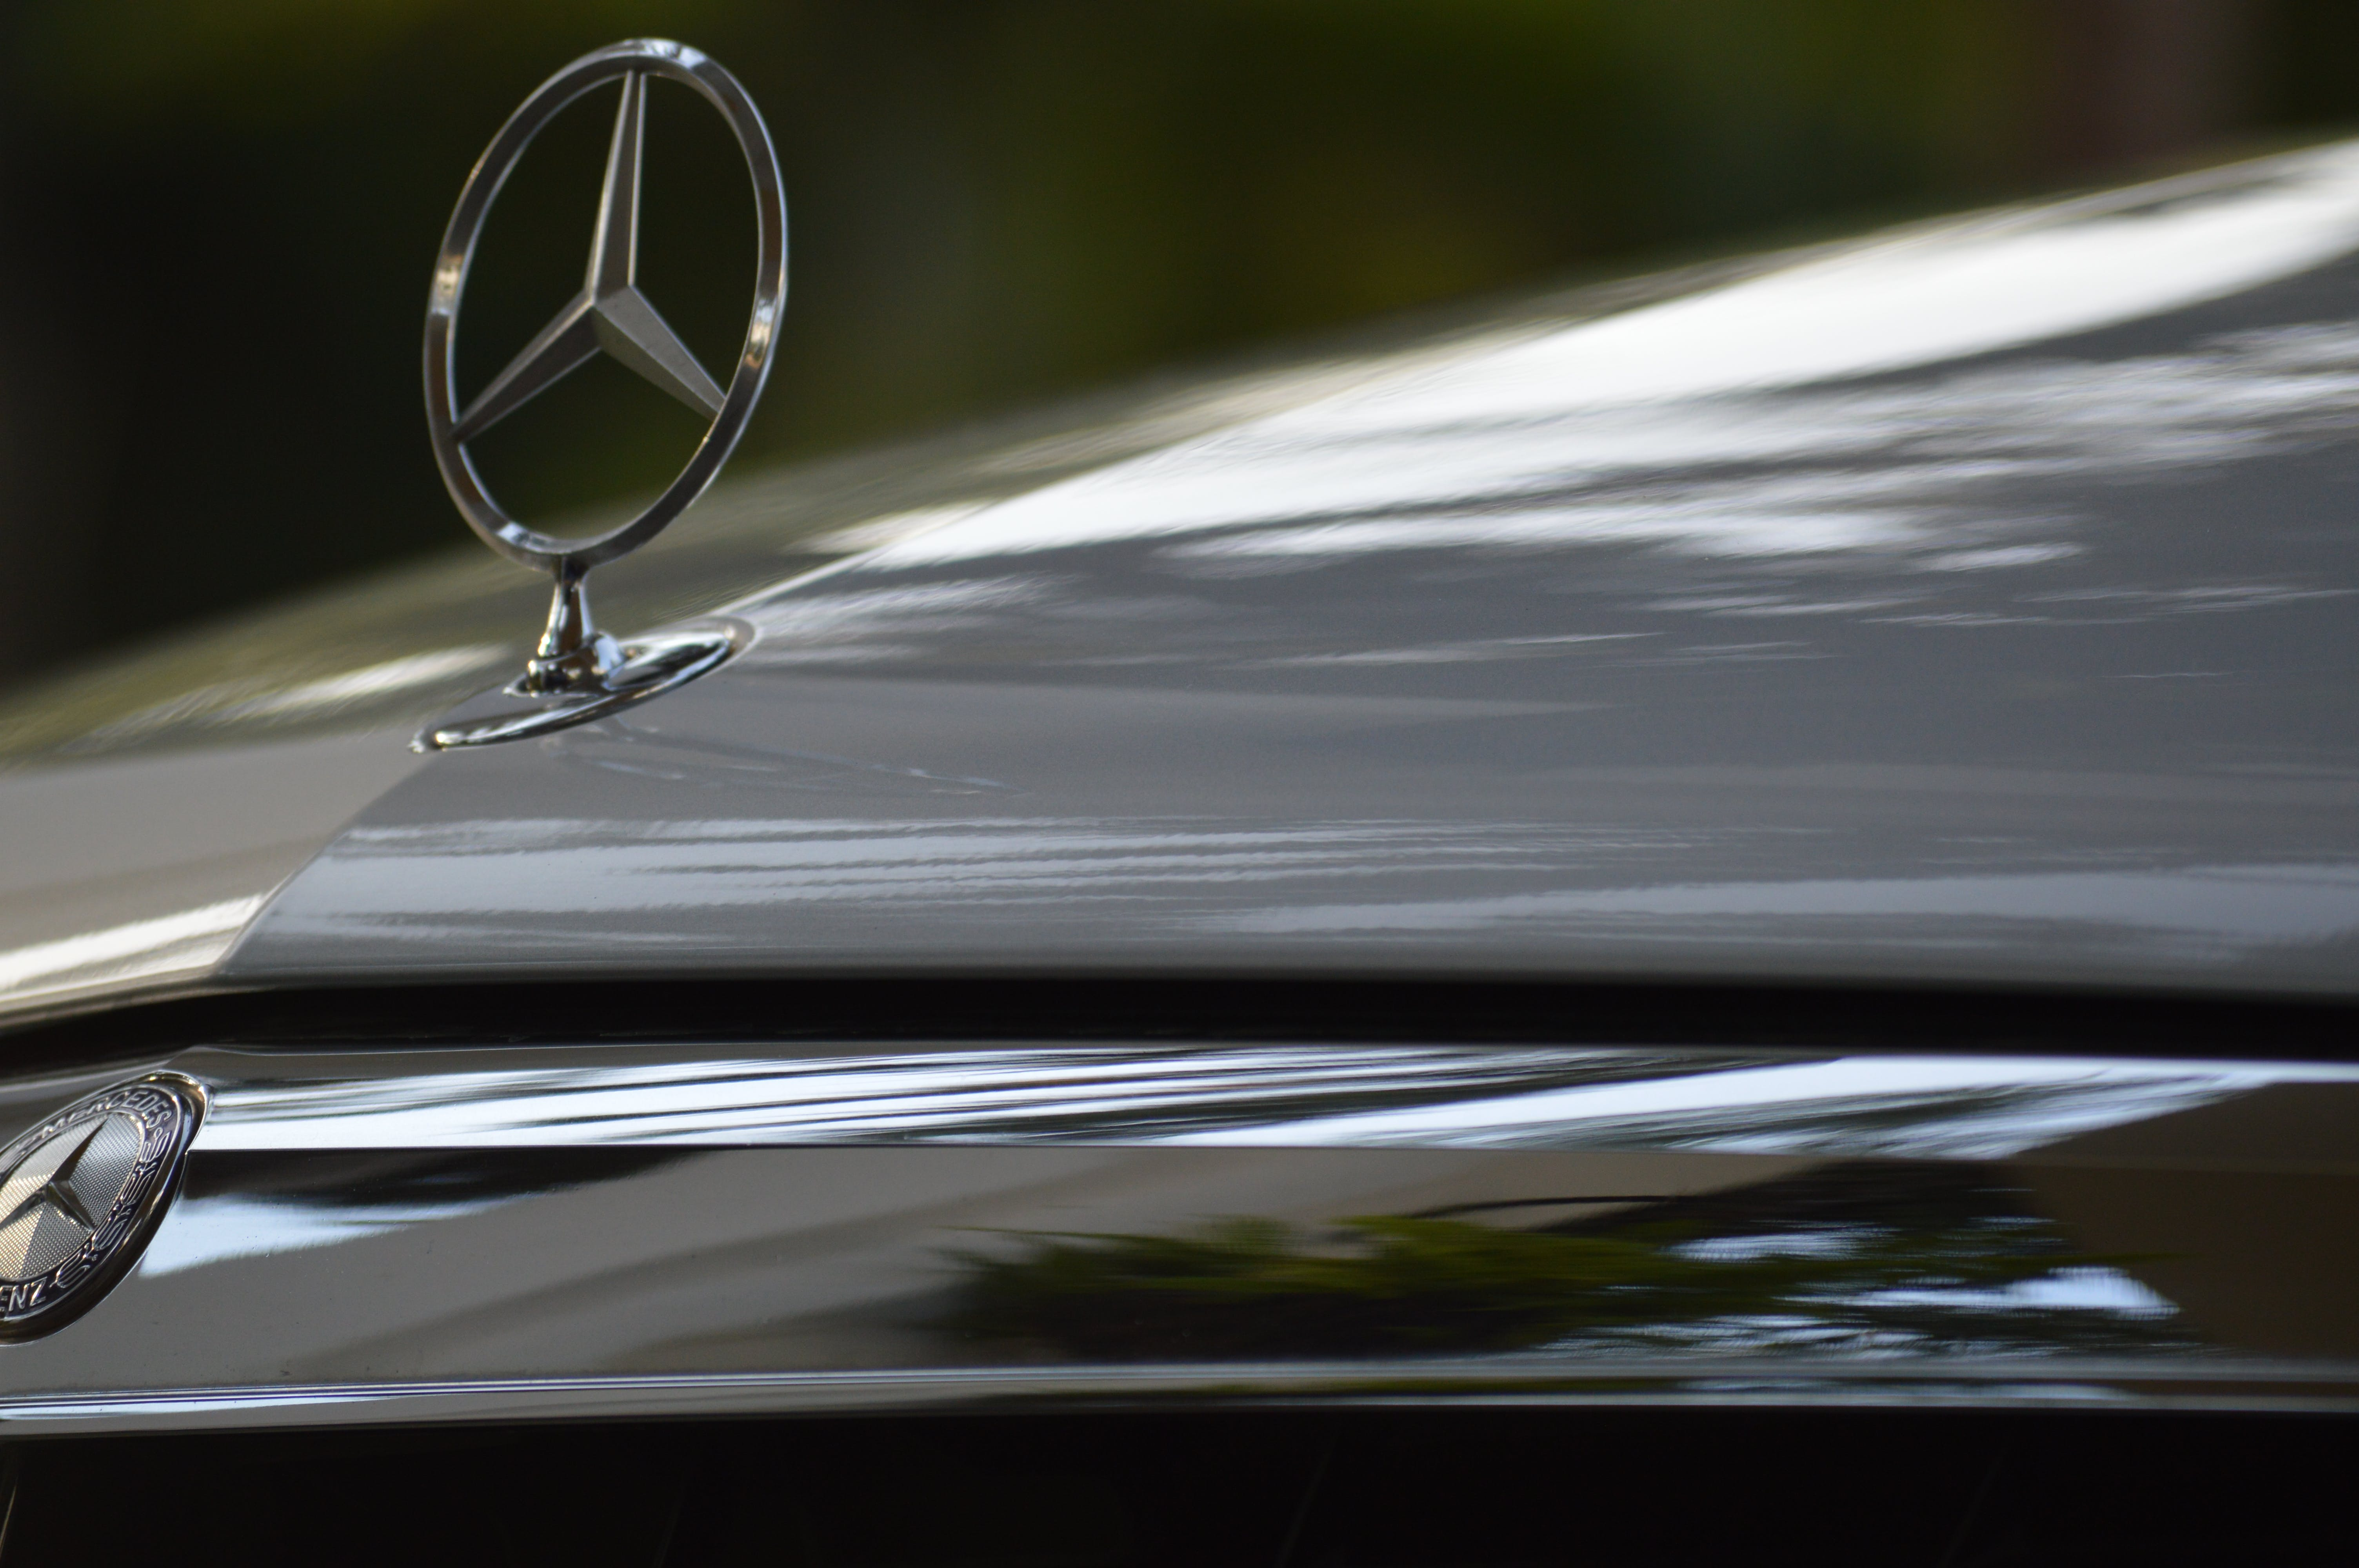 Free stock photo of benz, cars, luxurious, mercedes